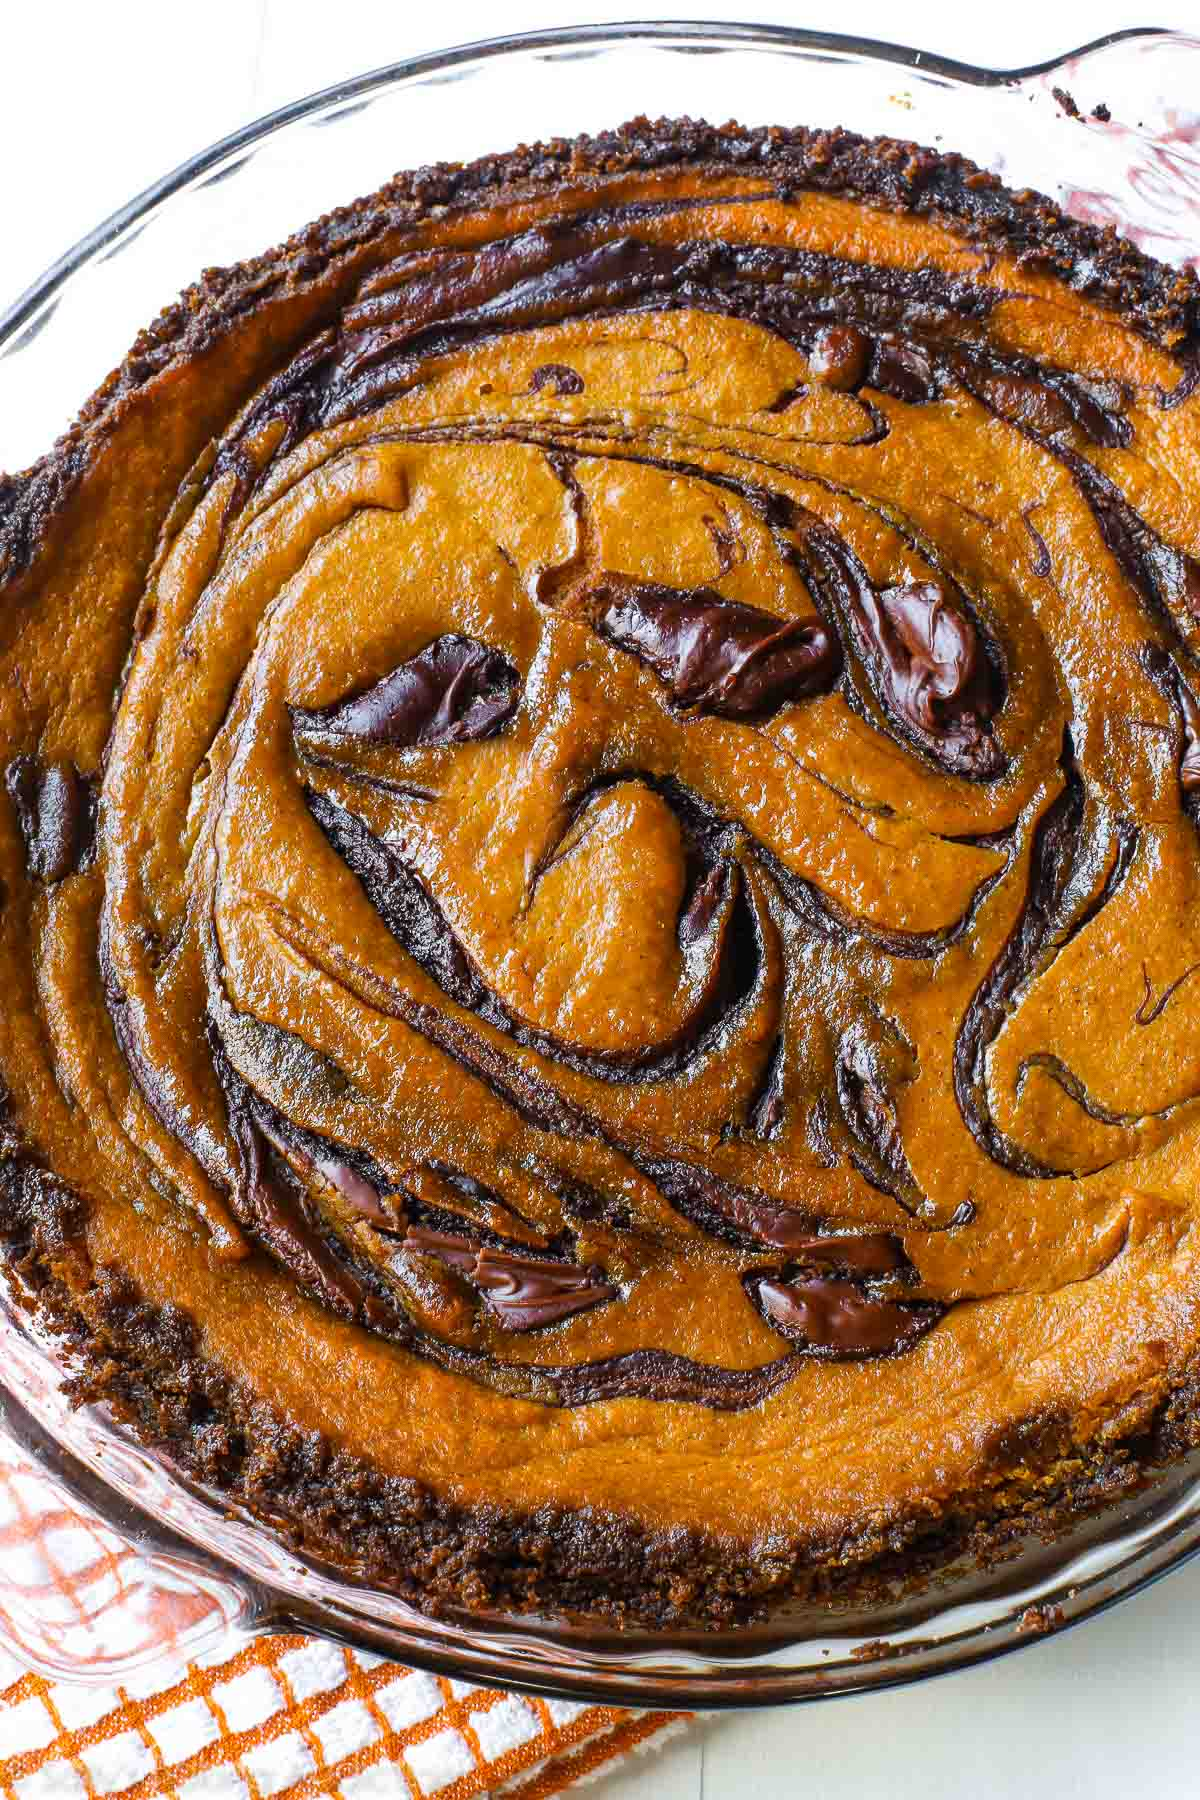 A twist on traditional pumpkin pie - swirled with decadent Nutella and baked in a gingersnap crust. Recipe on sallysbakingaddiction.com